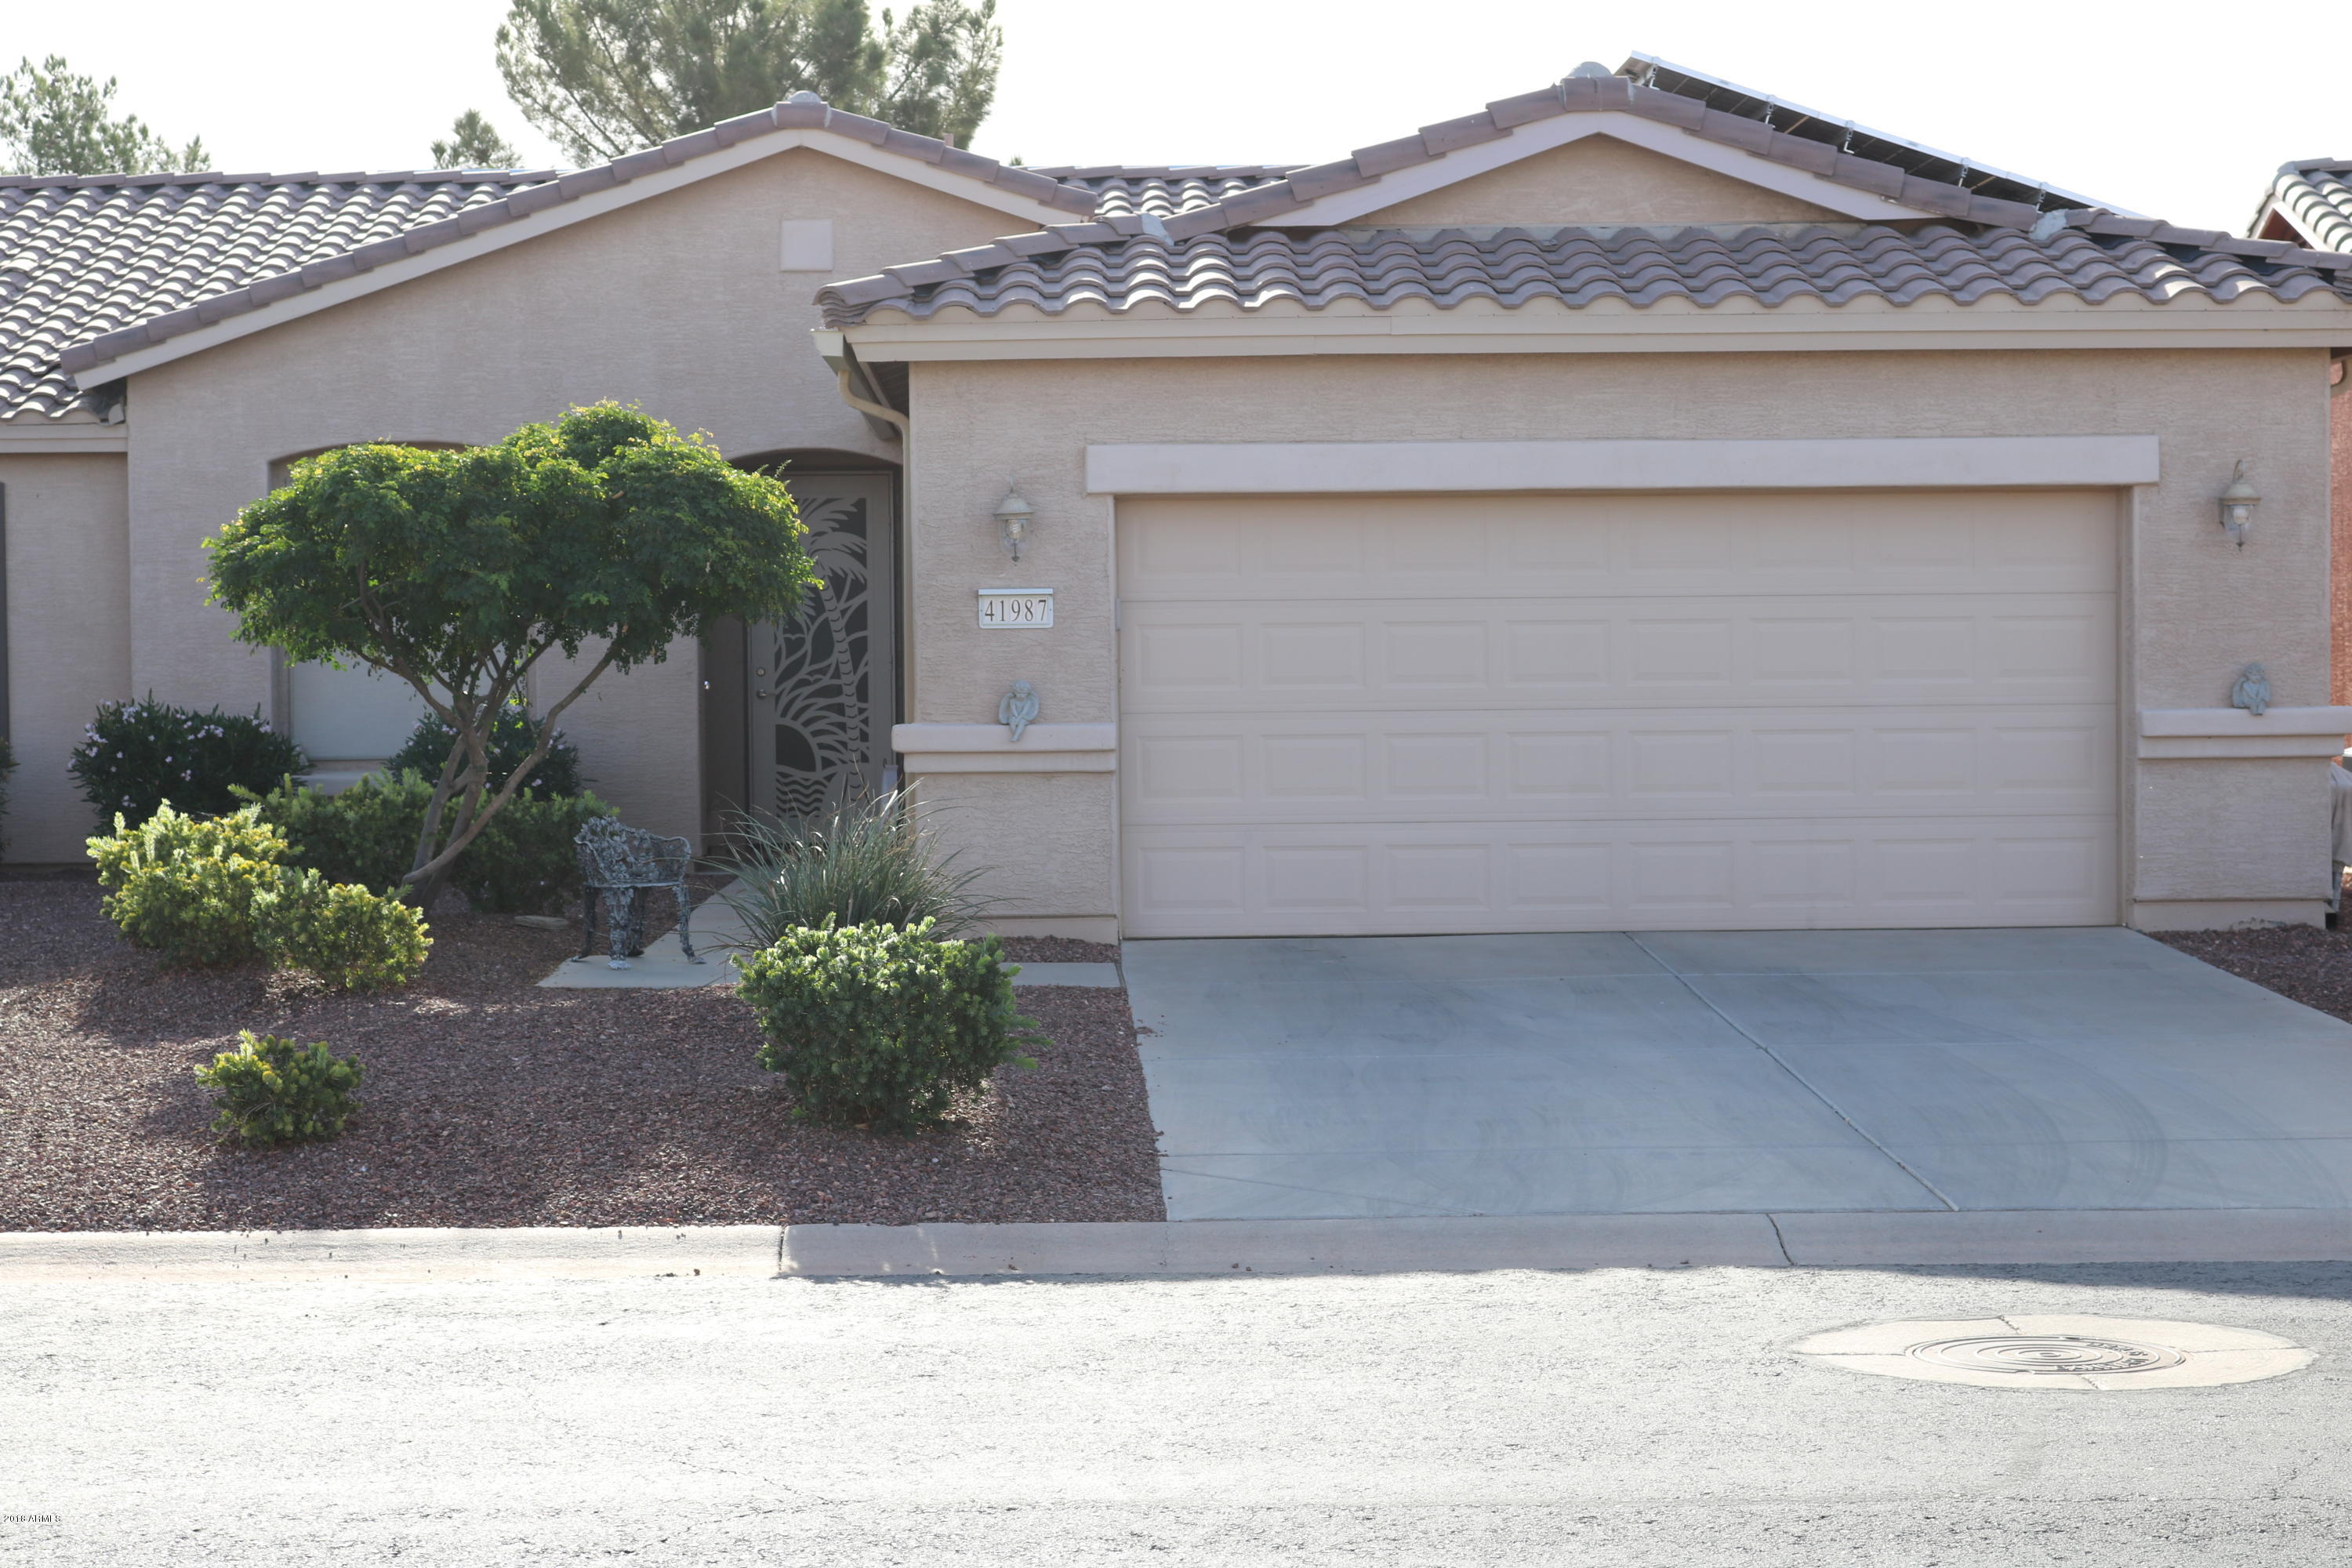 Photo for 41987 W Ellington Lane, Maricopa, AZ 85138 (MLS # 5844602)